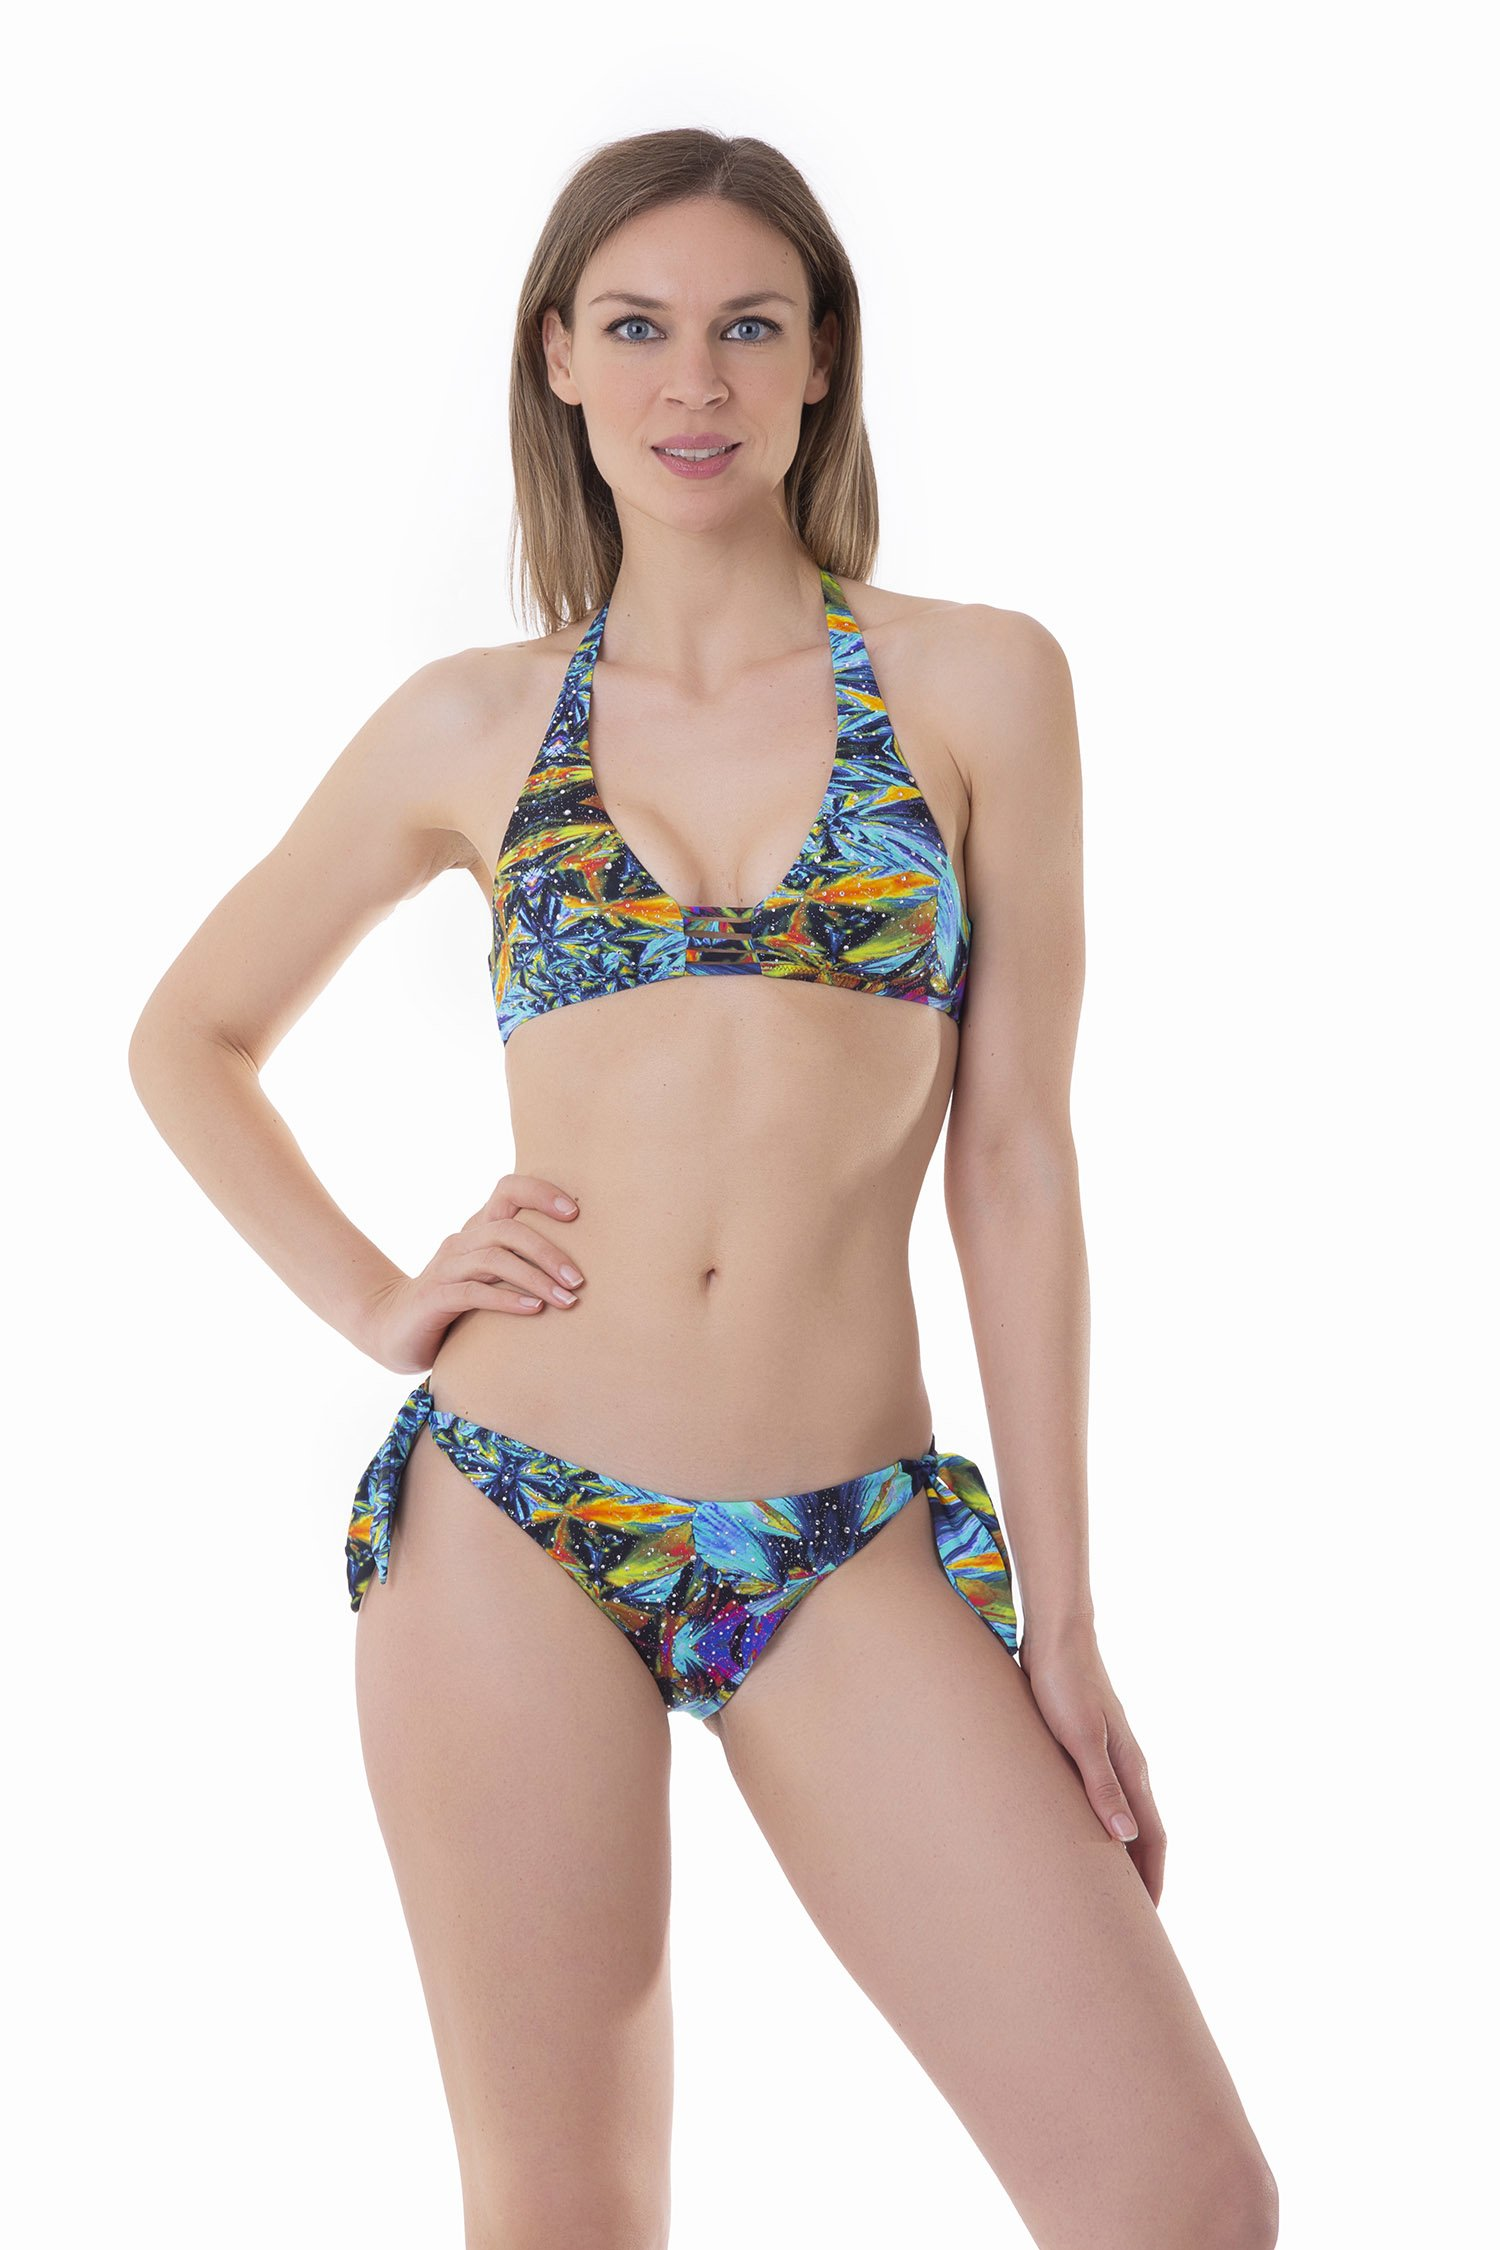 BIKINI HALTER STRINGS STRASS PRINTED - Blue Kaleidoscope